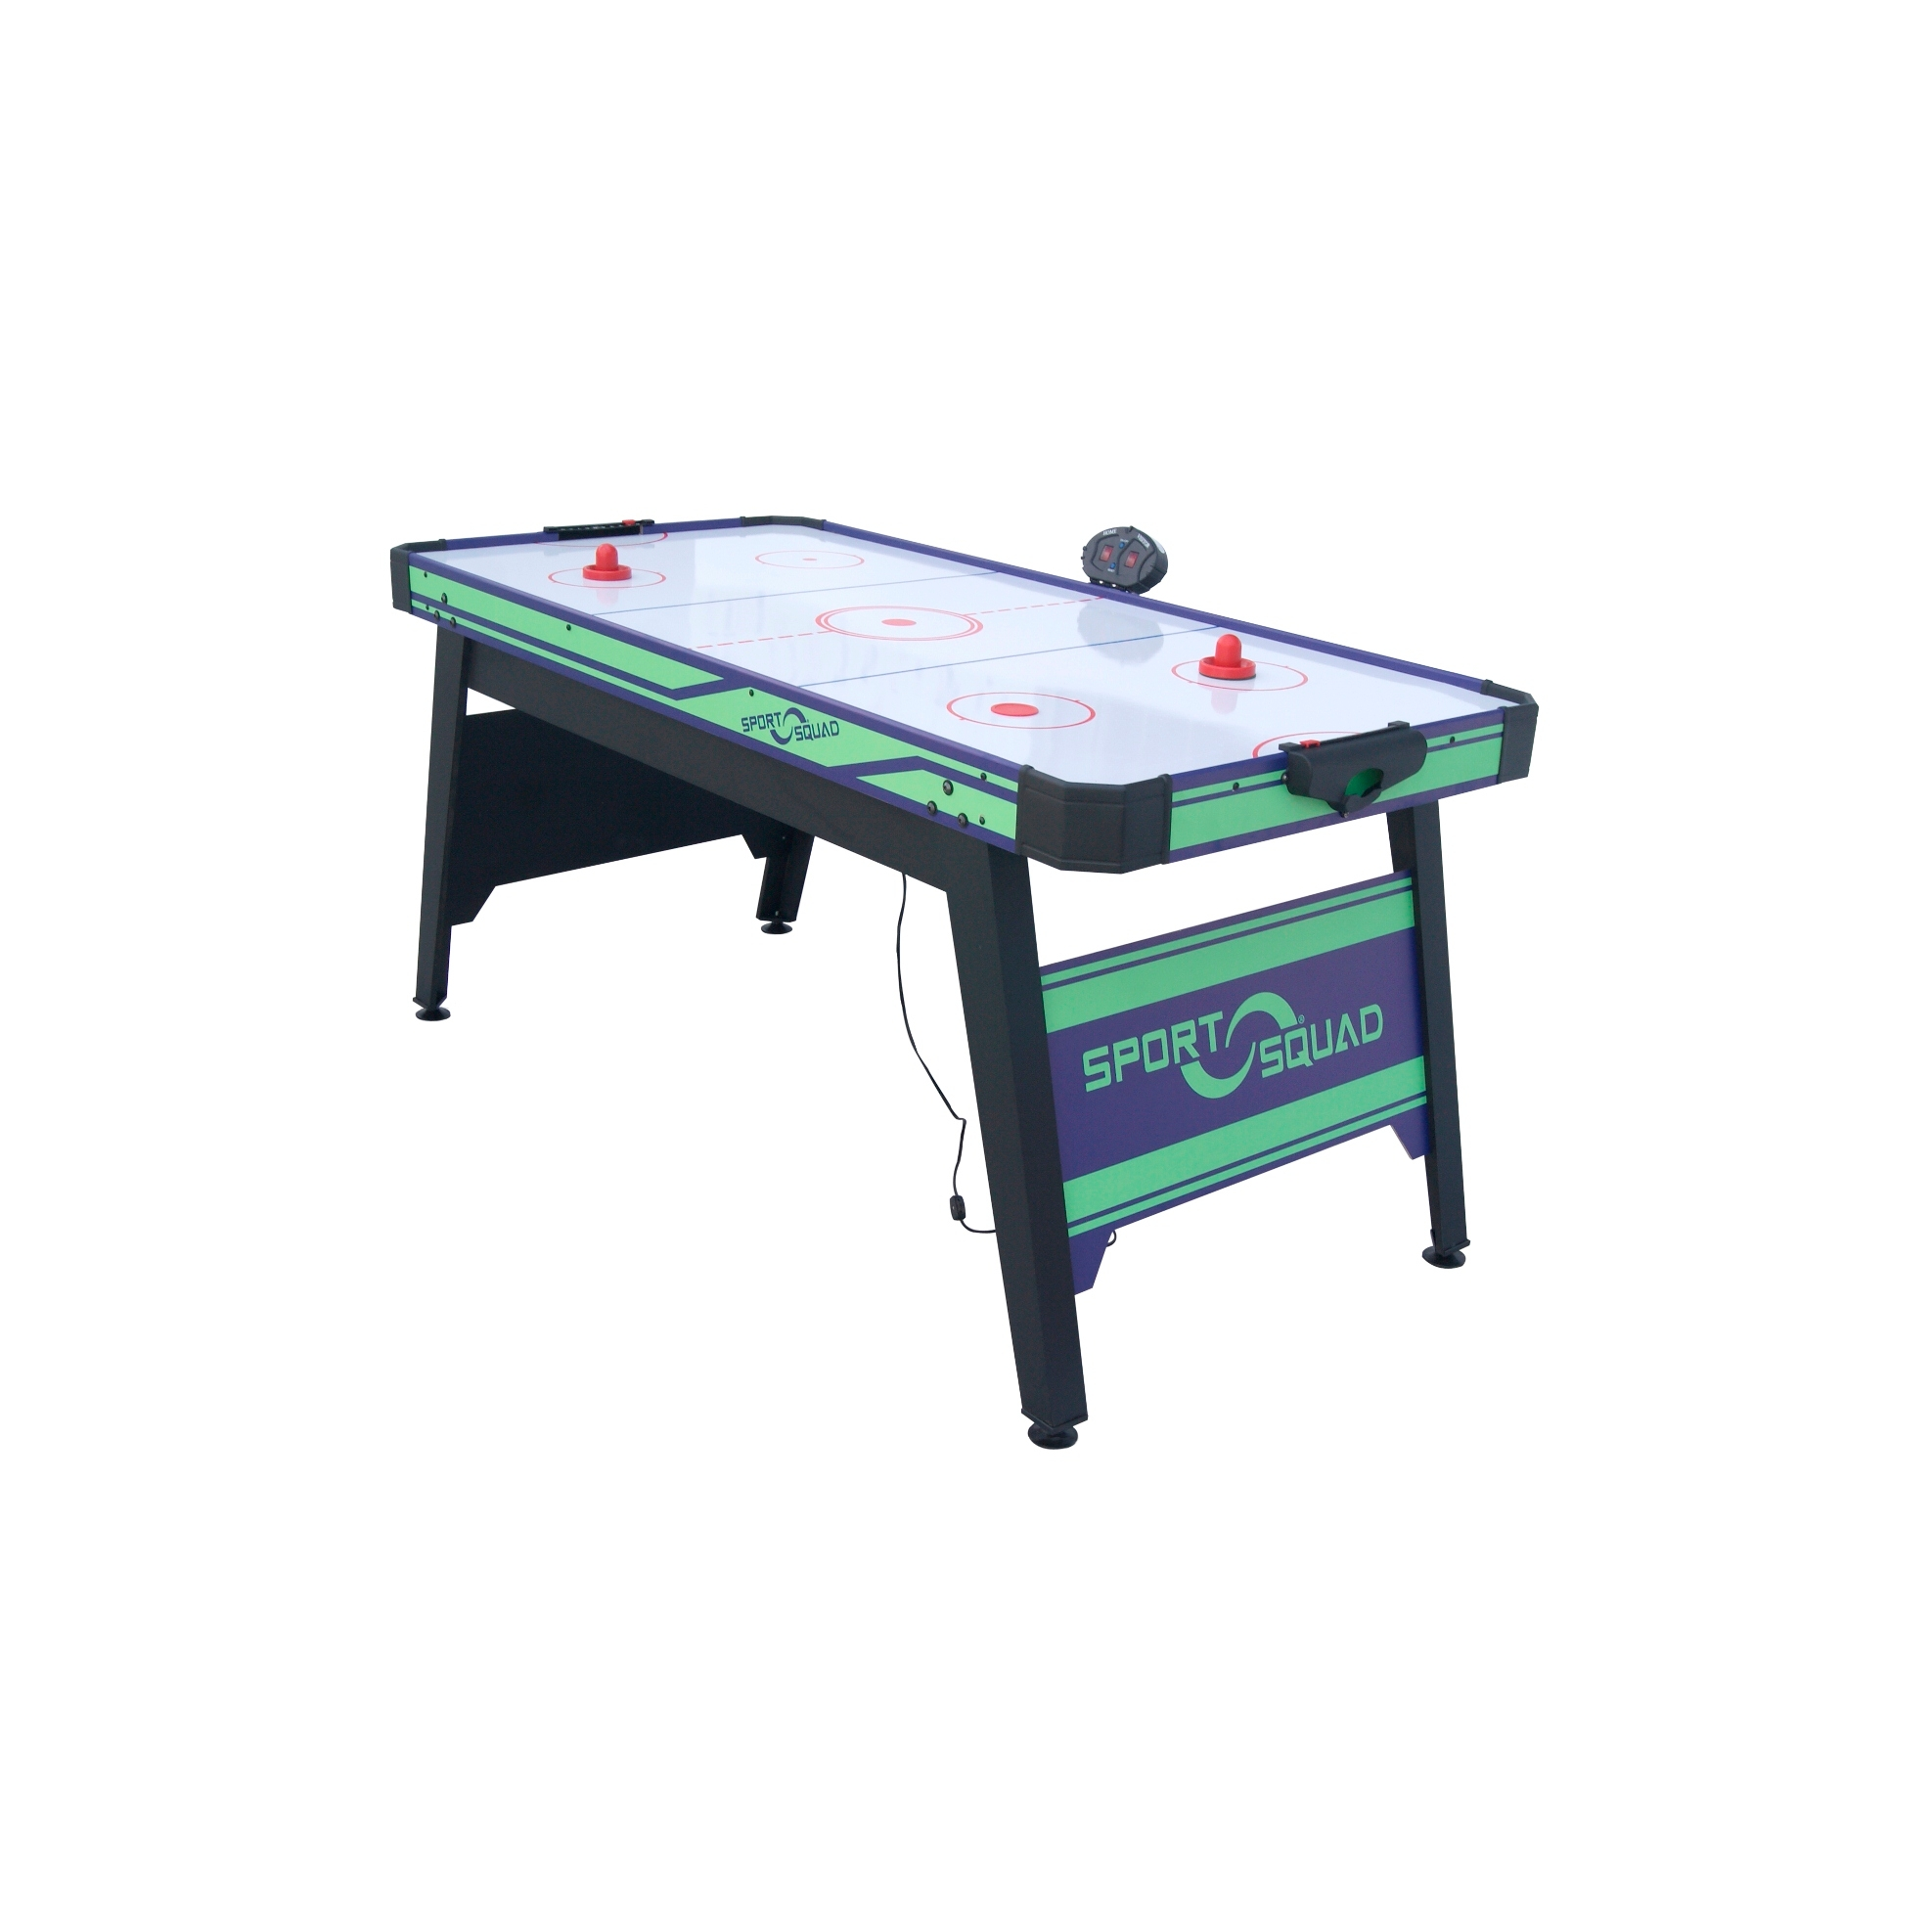 Sport-Squad-66in-Air-Powered-Hockey-BLUE-GREEN-with-Table-Tennis-Conversion-Top